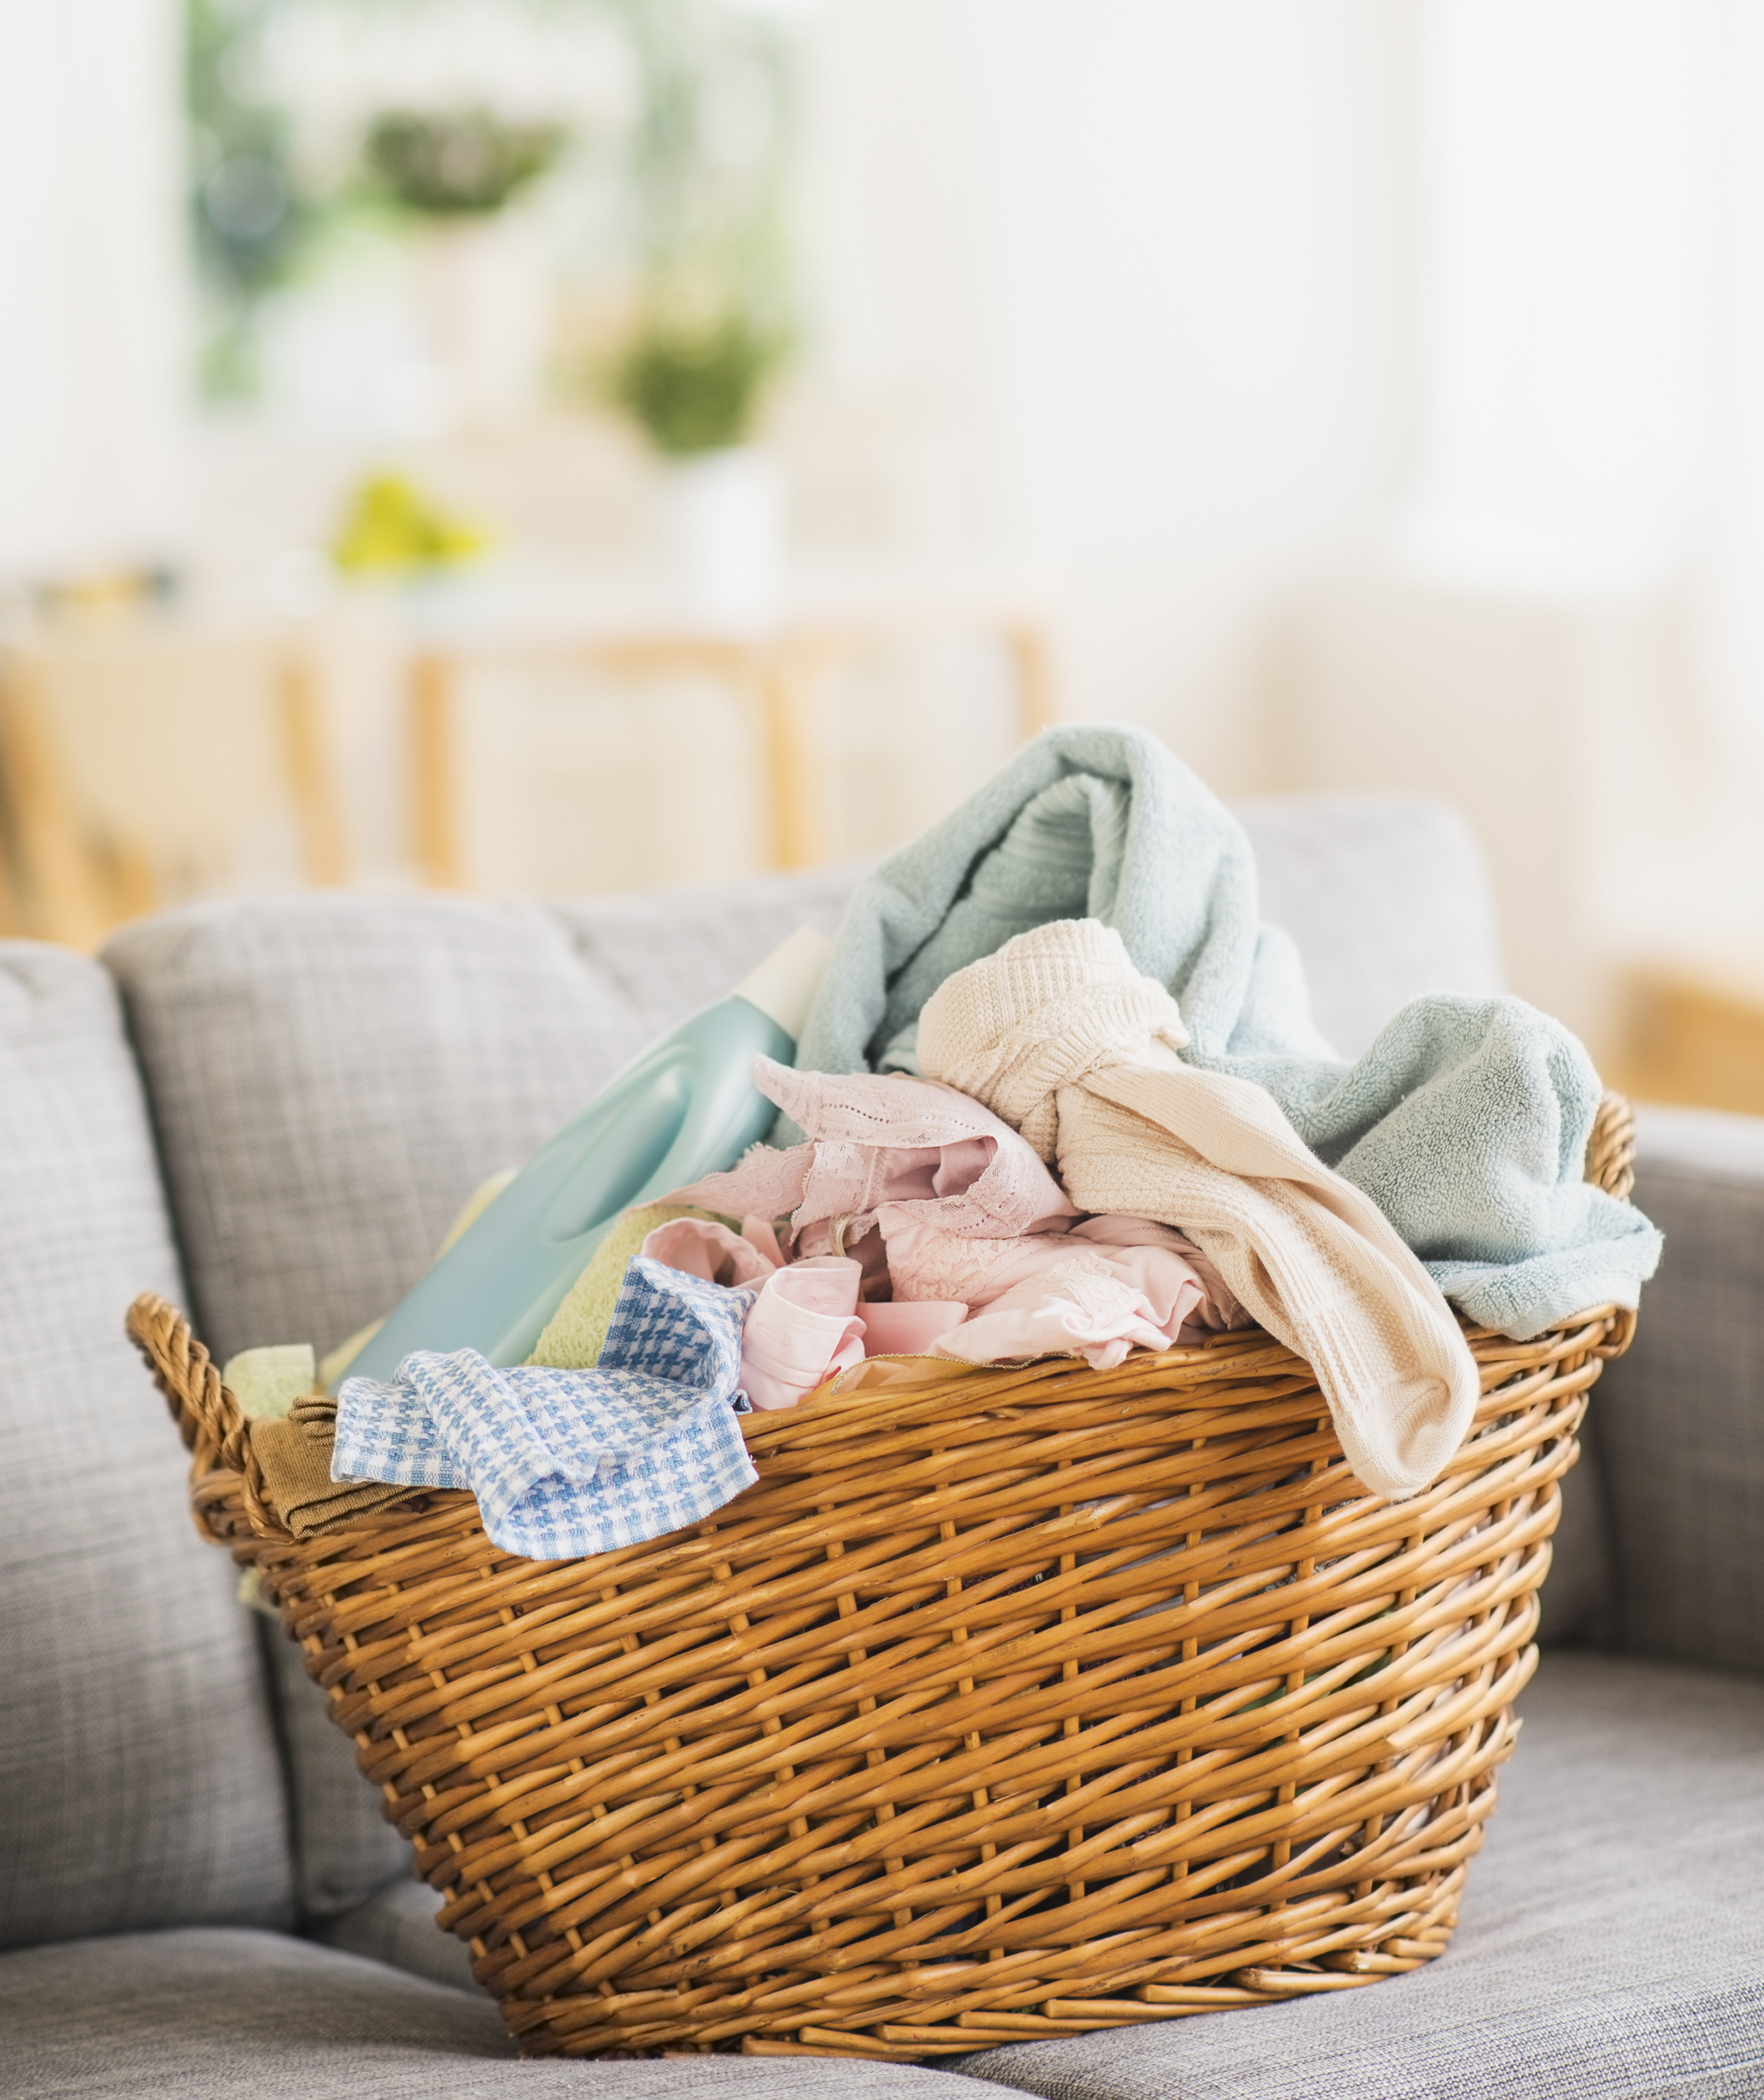 laundry-basket-clothes